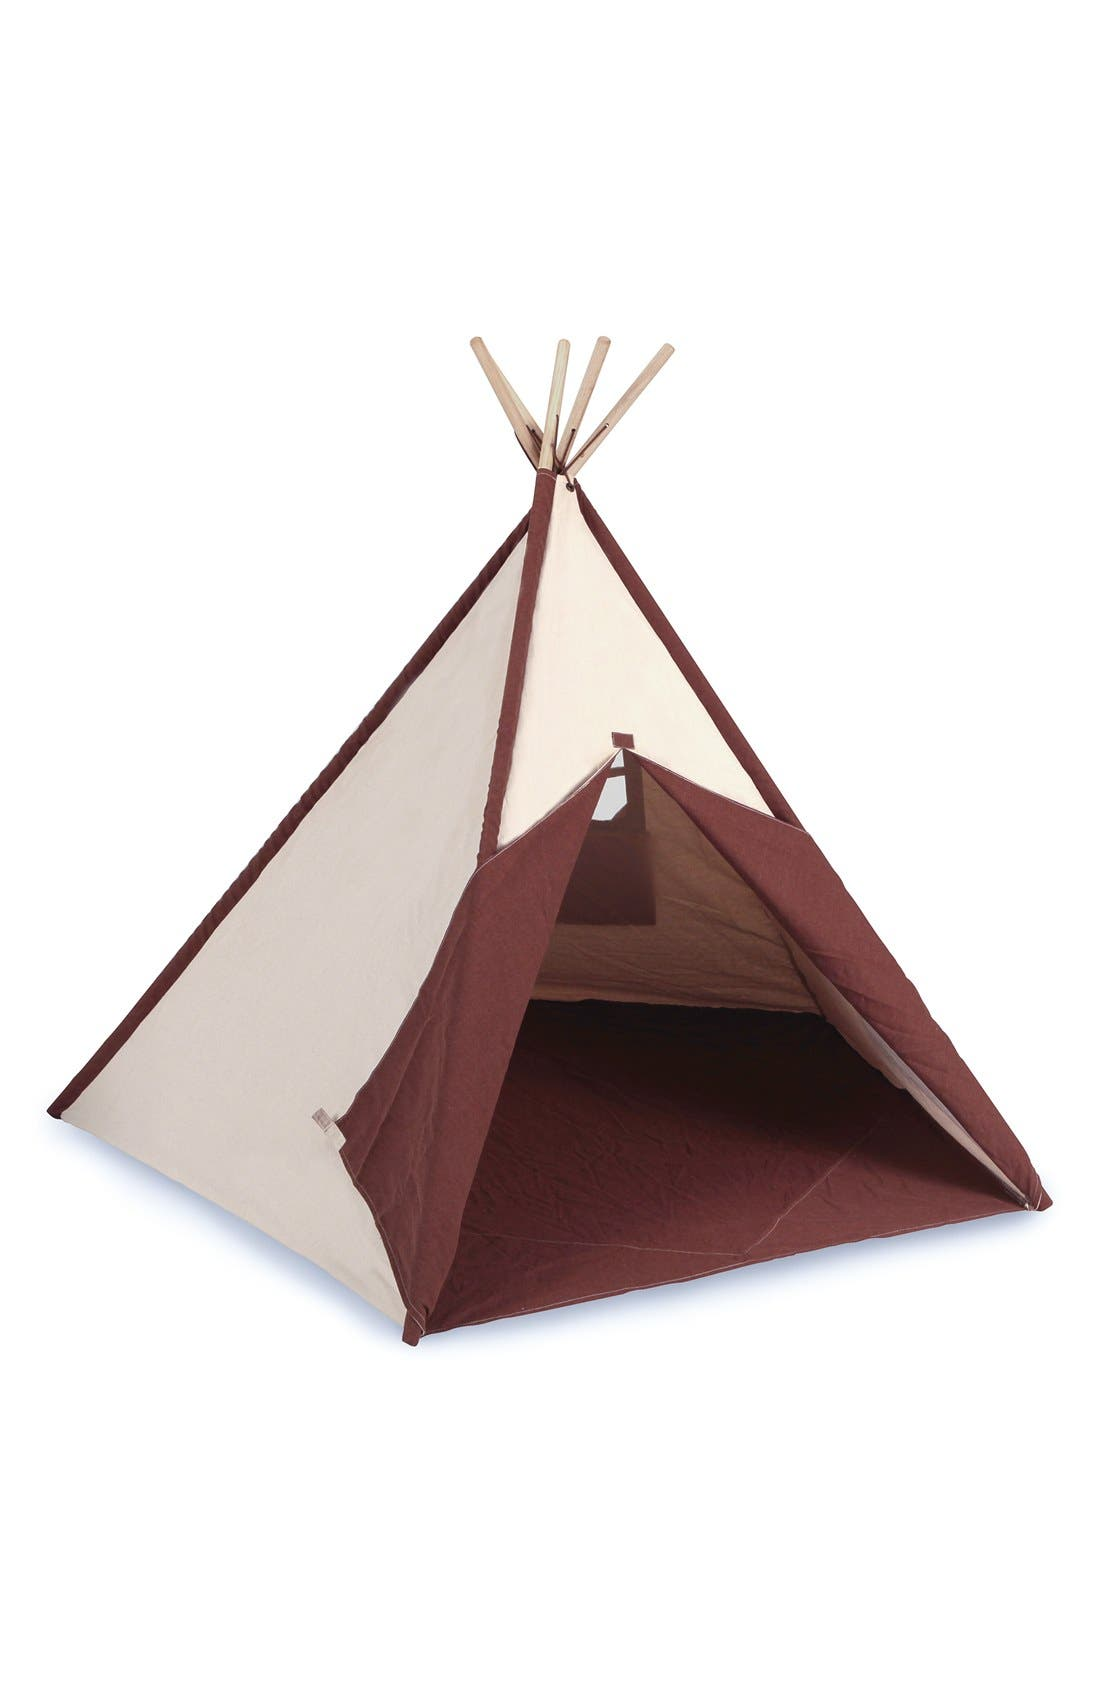 PACIFIC PLAY TENTS Cotton Canvas Teepee